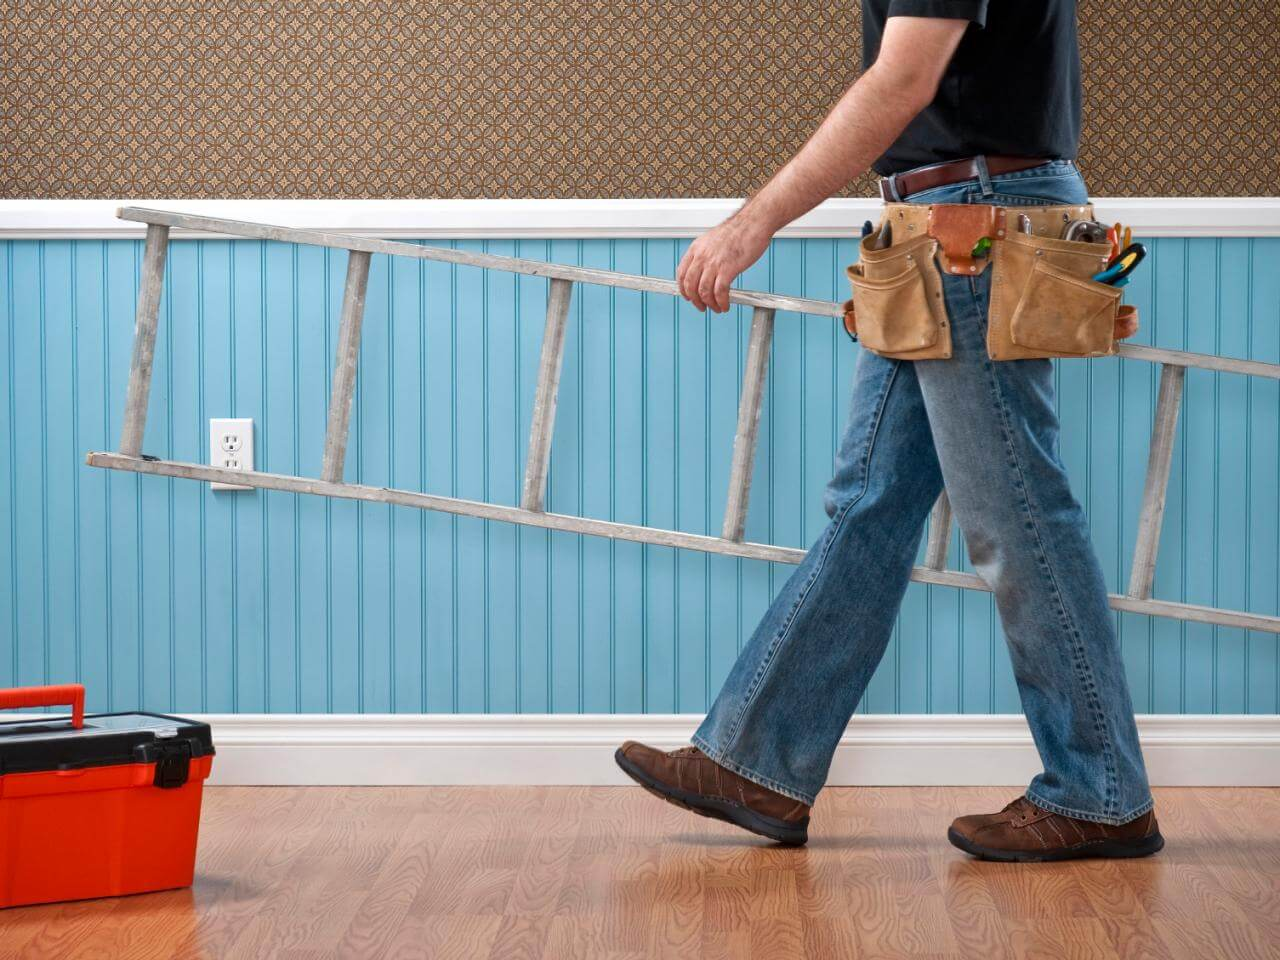 Handyman or contractor? The age-old question